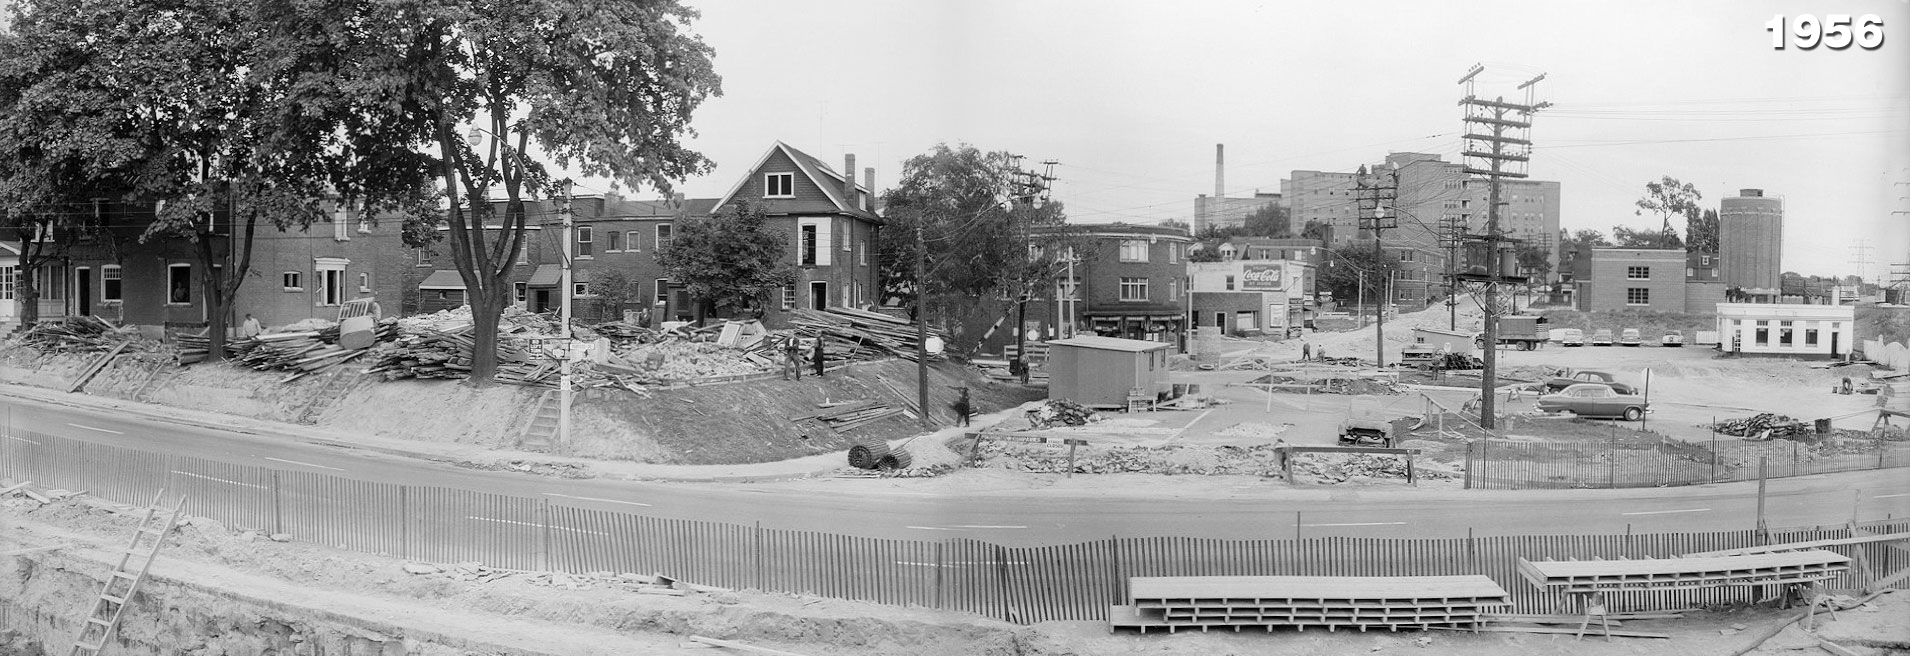 Parkside Drive looking east along Queen Street towards St. Joseph's Hospital, 1956